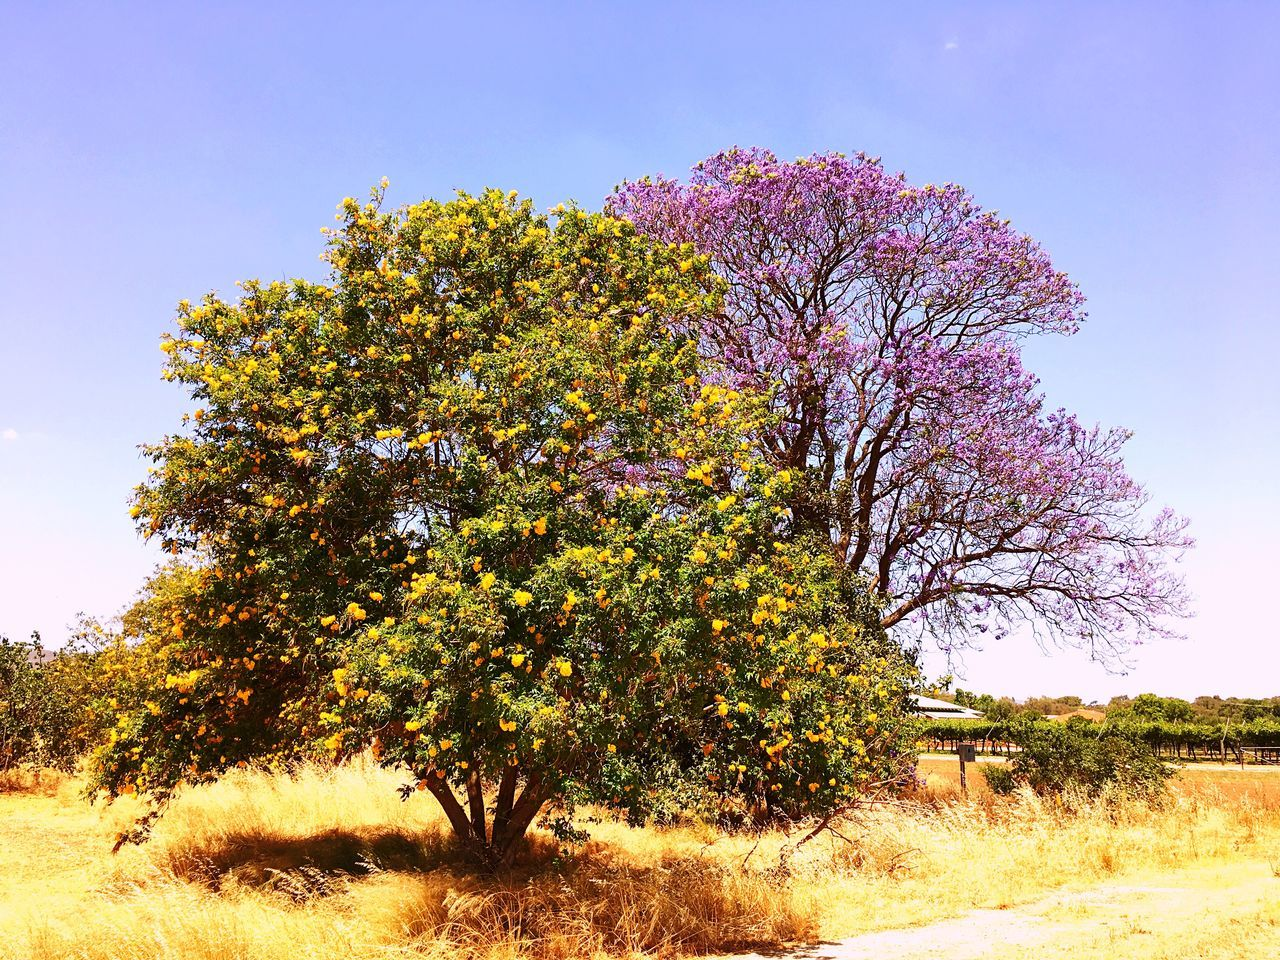 Beauty In Nature Tree Growth Nature No People Outdoors Freshness Scenics Sky Flower Day Fragility Contrast Nature_collection Nature Eyemphotography Eyem Best Shots Beauty In Nature Australia Jacaranda Colours Of Nature Blooming EyeEm Nature Photography Tree